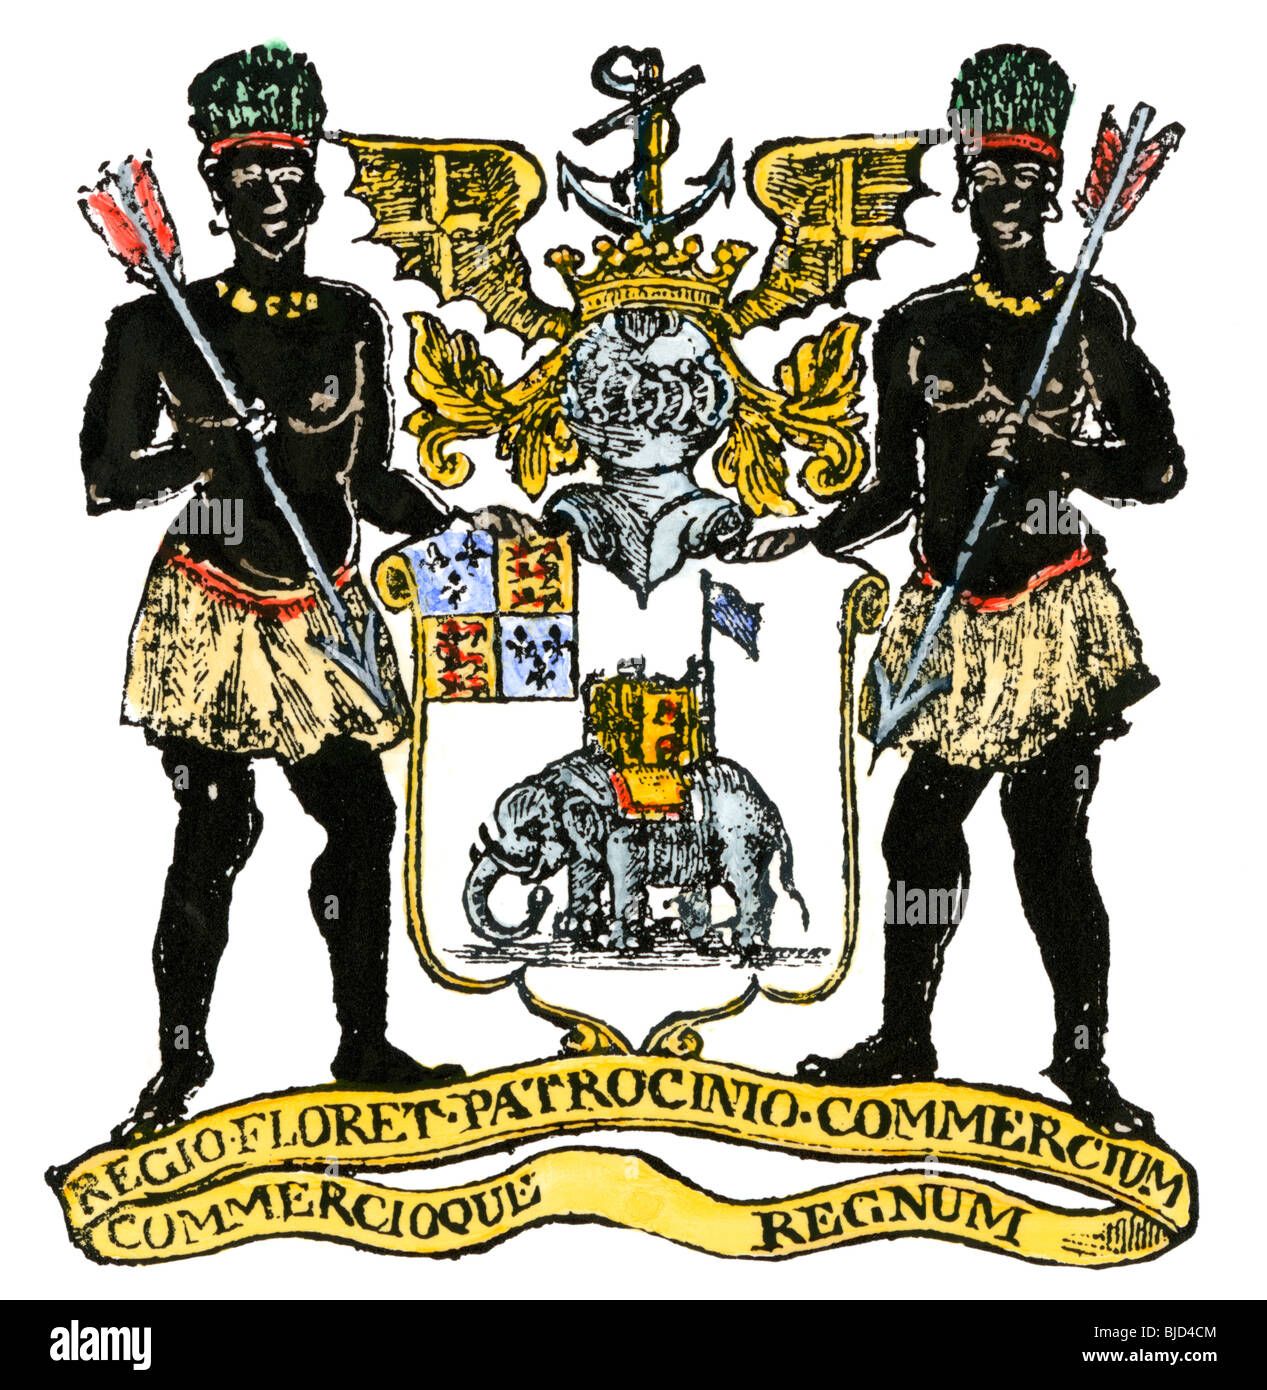 African Company arms, incorporated in London in 1588. Hand-colored woodcut - Stock Image